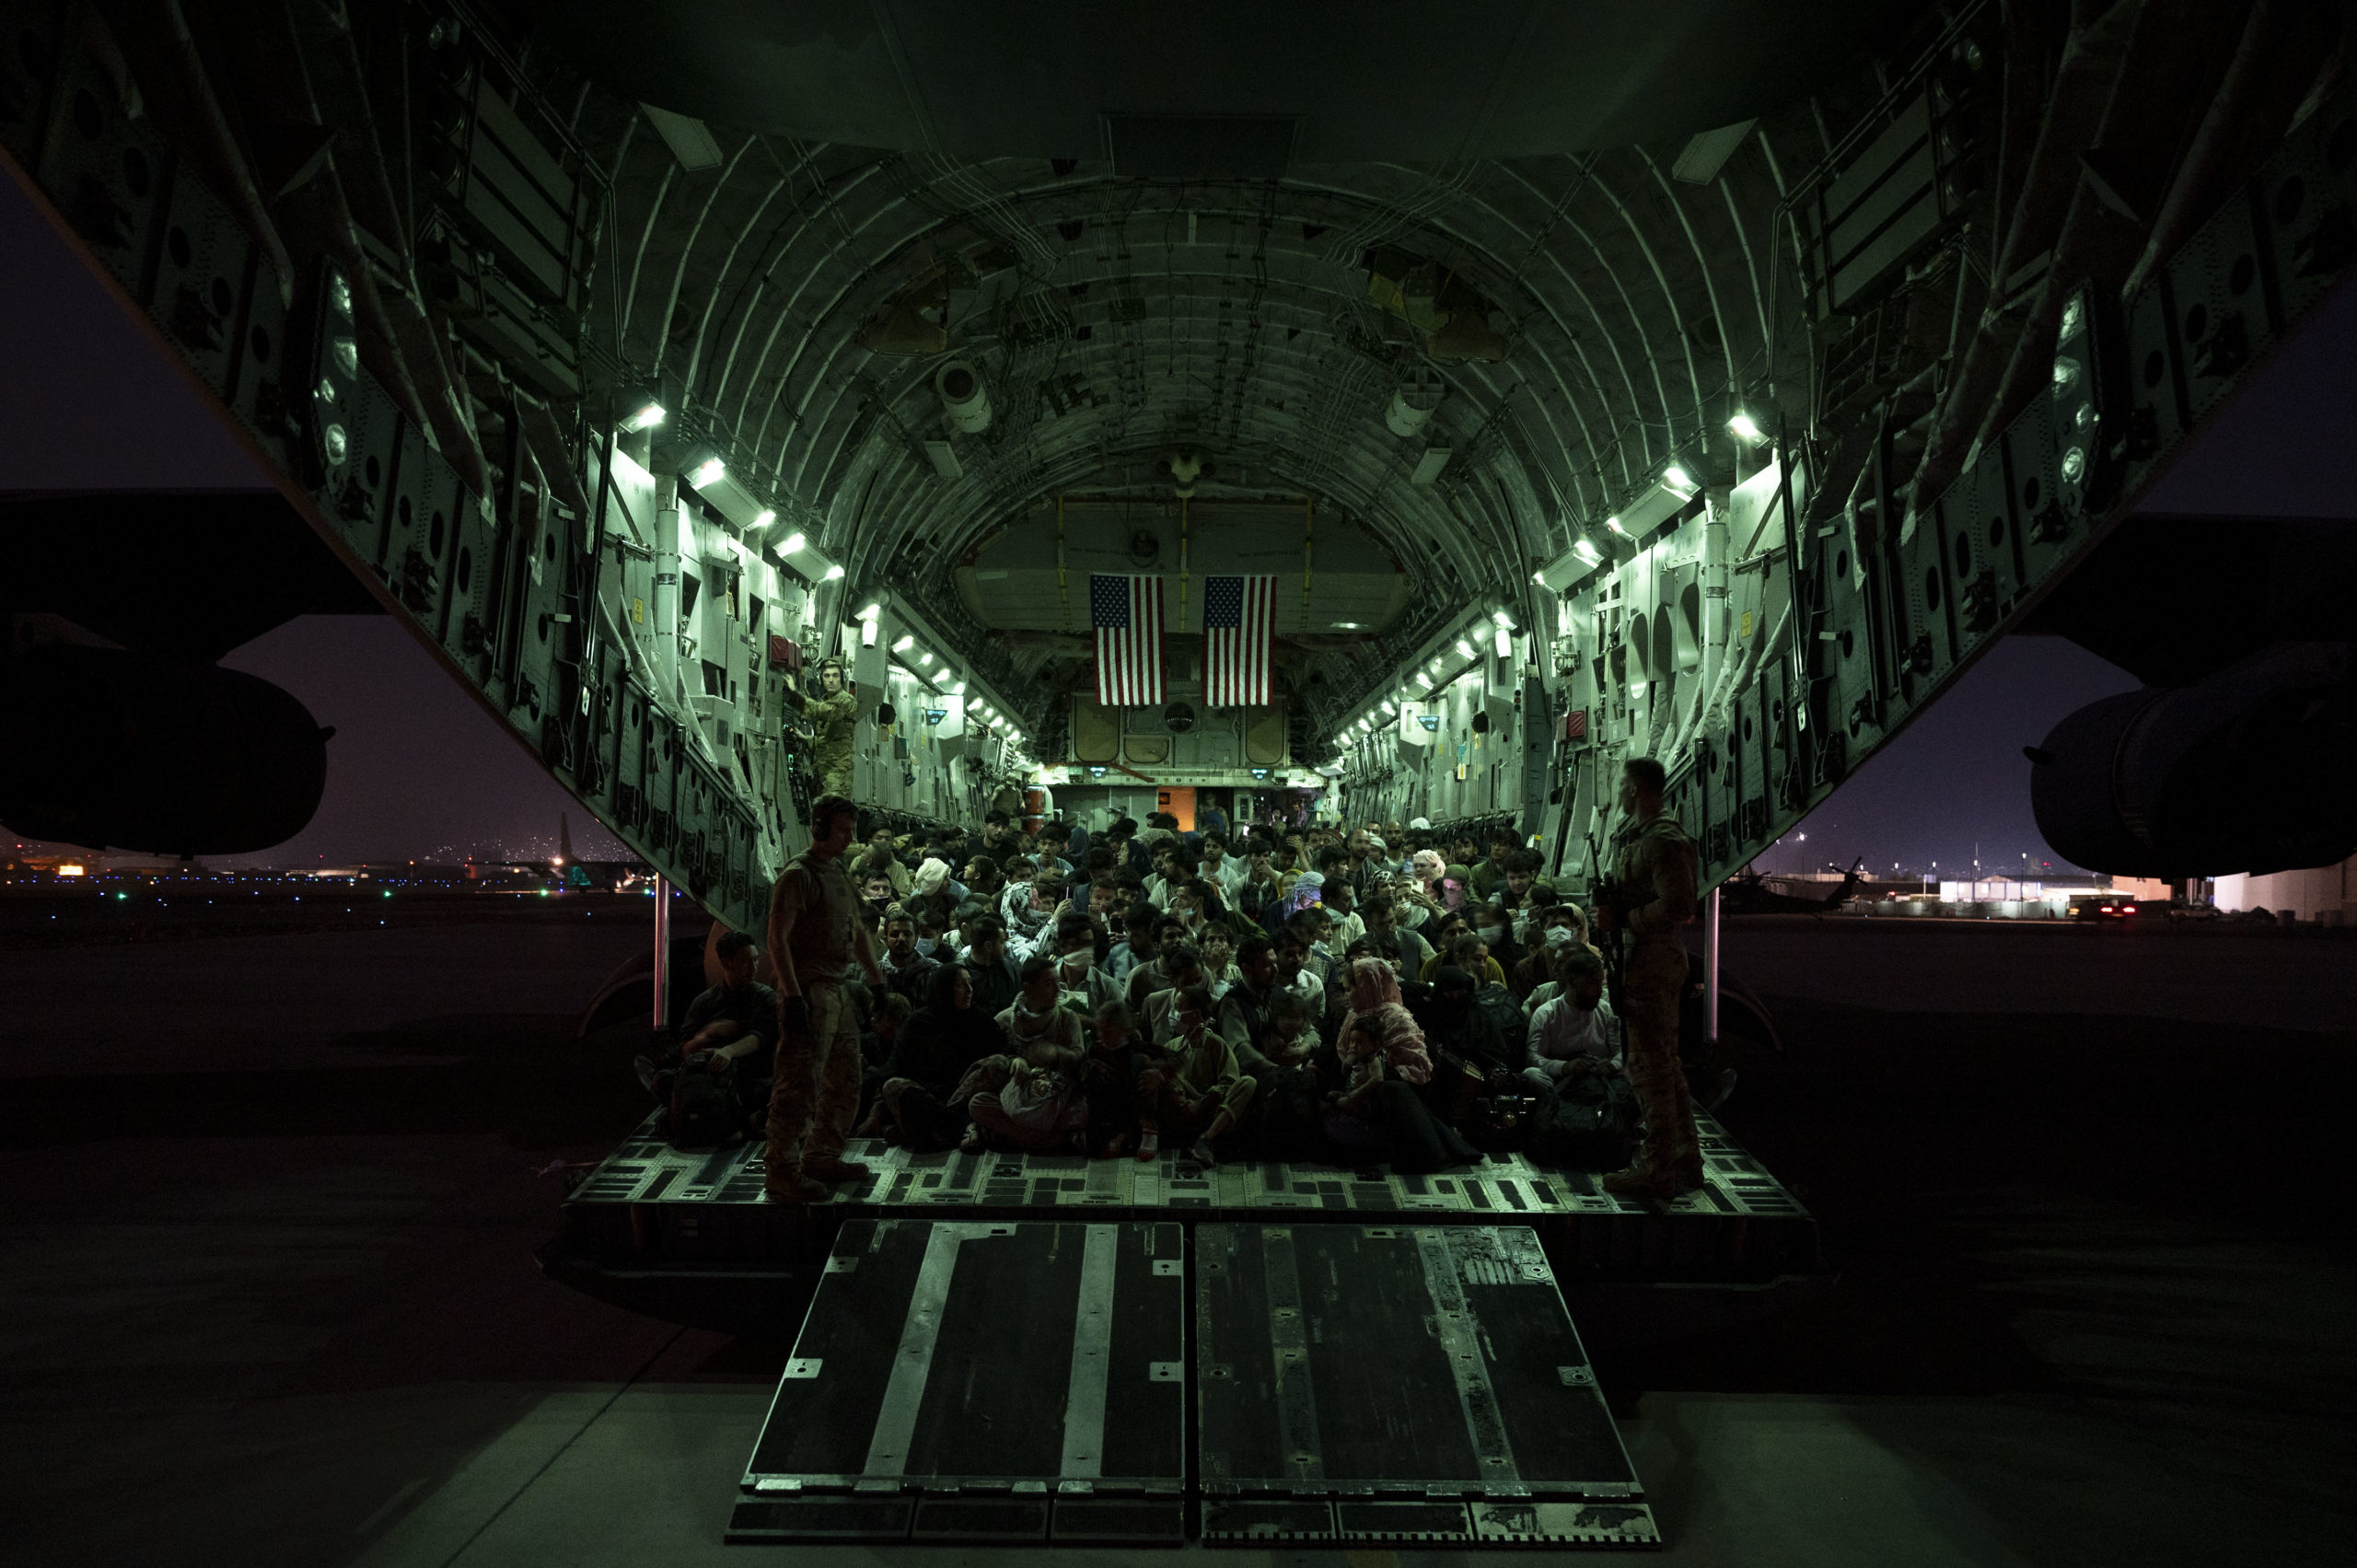 KABUL, AFGHANISTAN - AUGUST 21: In this handout provided by the U.S. Air Force, an air crew assigned to the 816th Expeditionary Airlift Squadron assists evacuees aboard a C-17 Globemaster III aircraft in support of the Afghanistan evacuation at Hamid Karzai International Airport on August 21, 2021 in Kabul, Afghanistan. (Photo by Taylor Crul/U.S. Air Force via Getty Images)